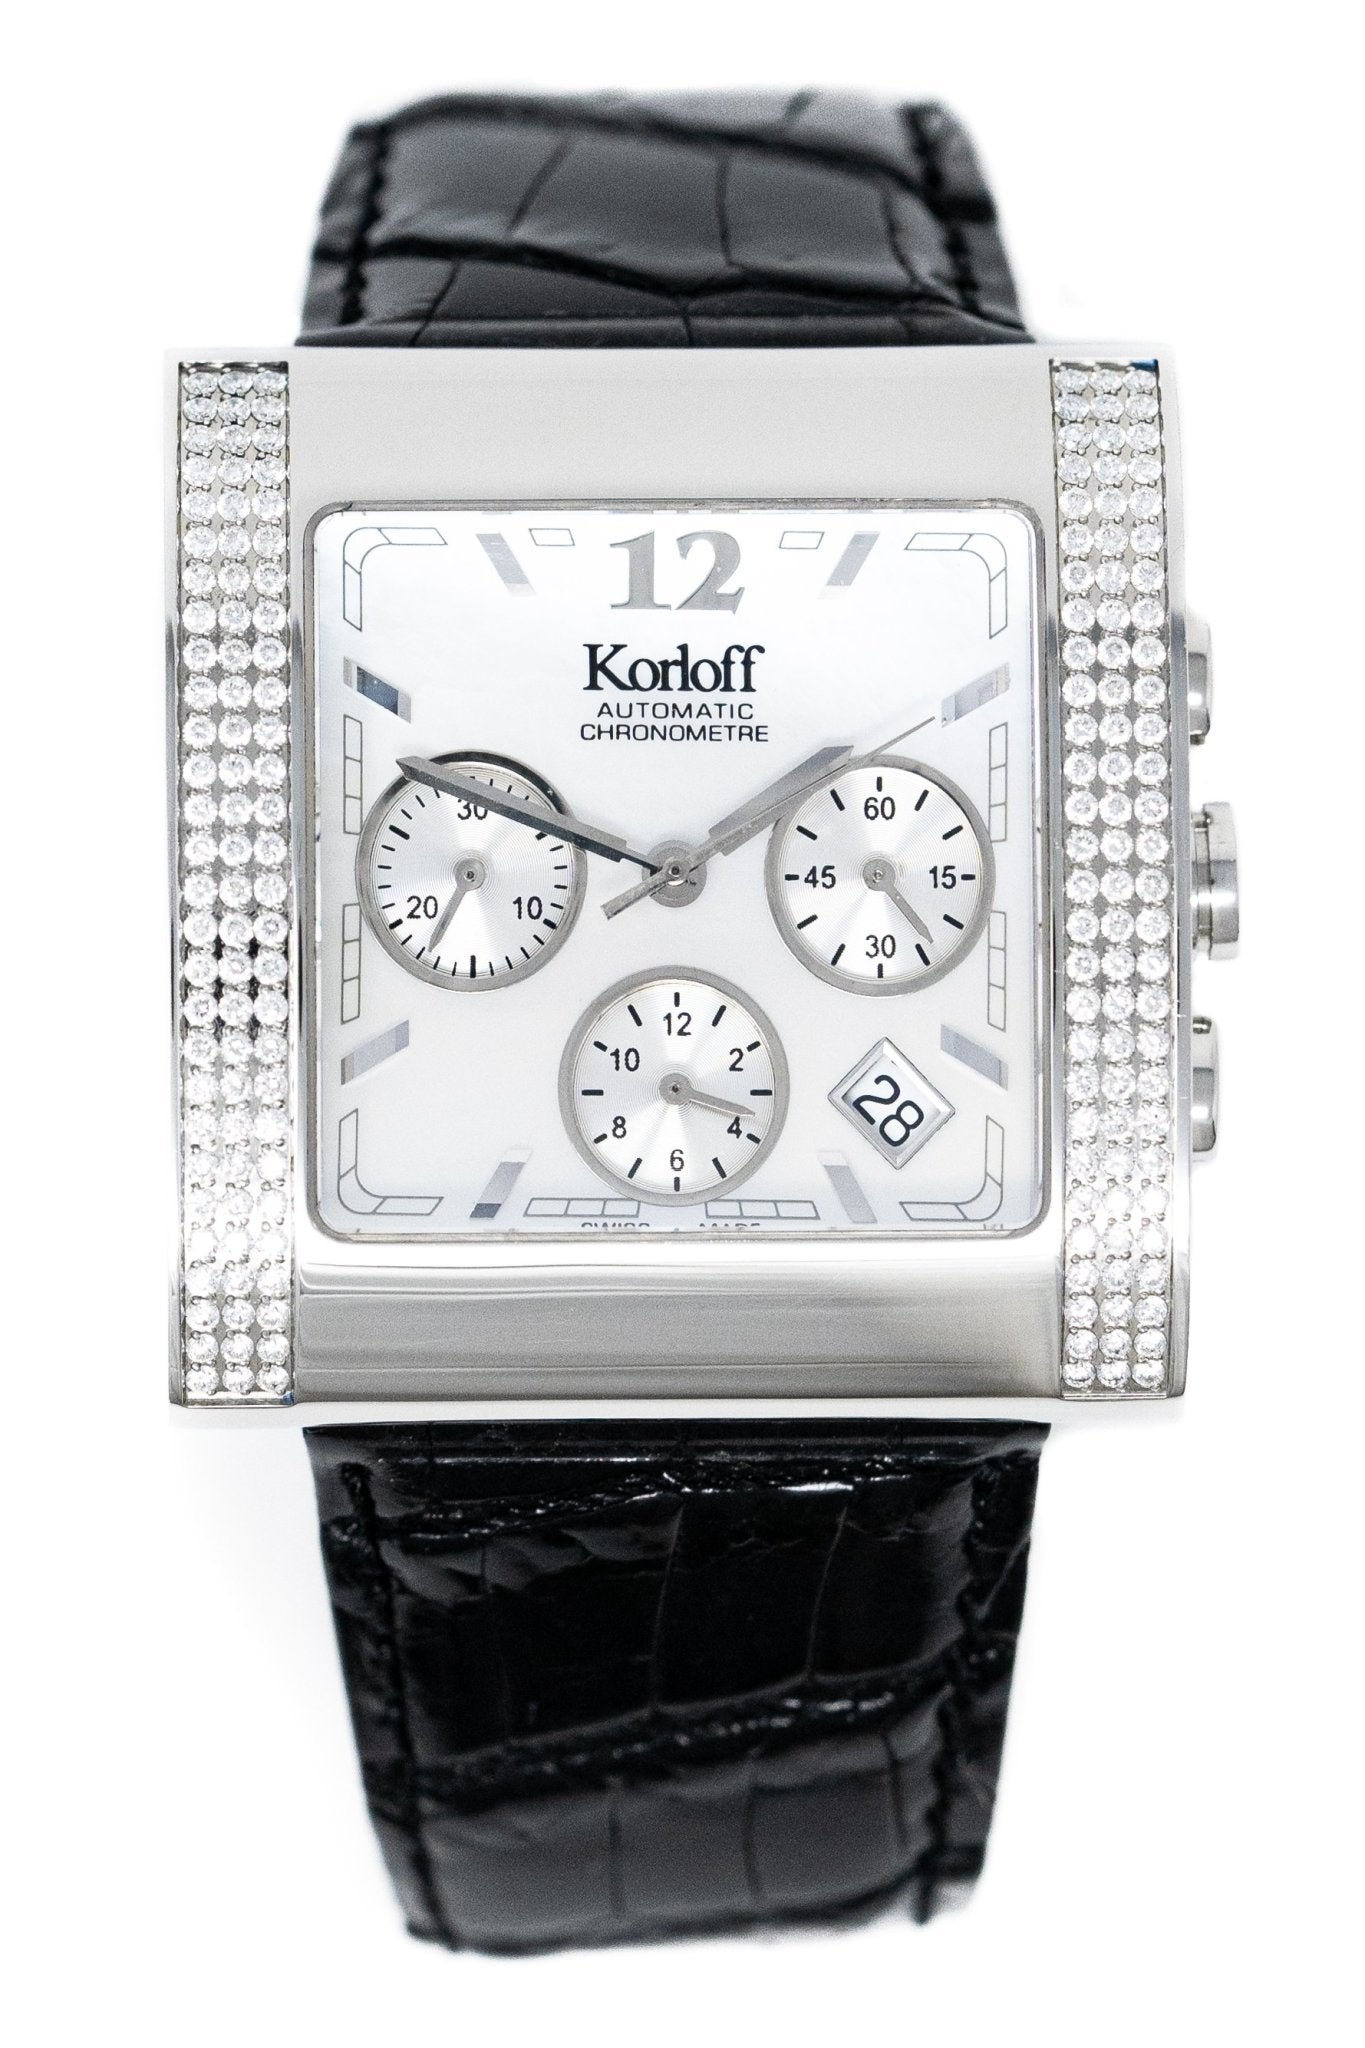 Korloff Diamond Chronometer Limited Edition - Watches & Crystals